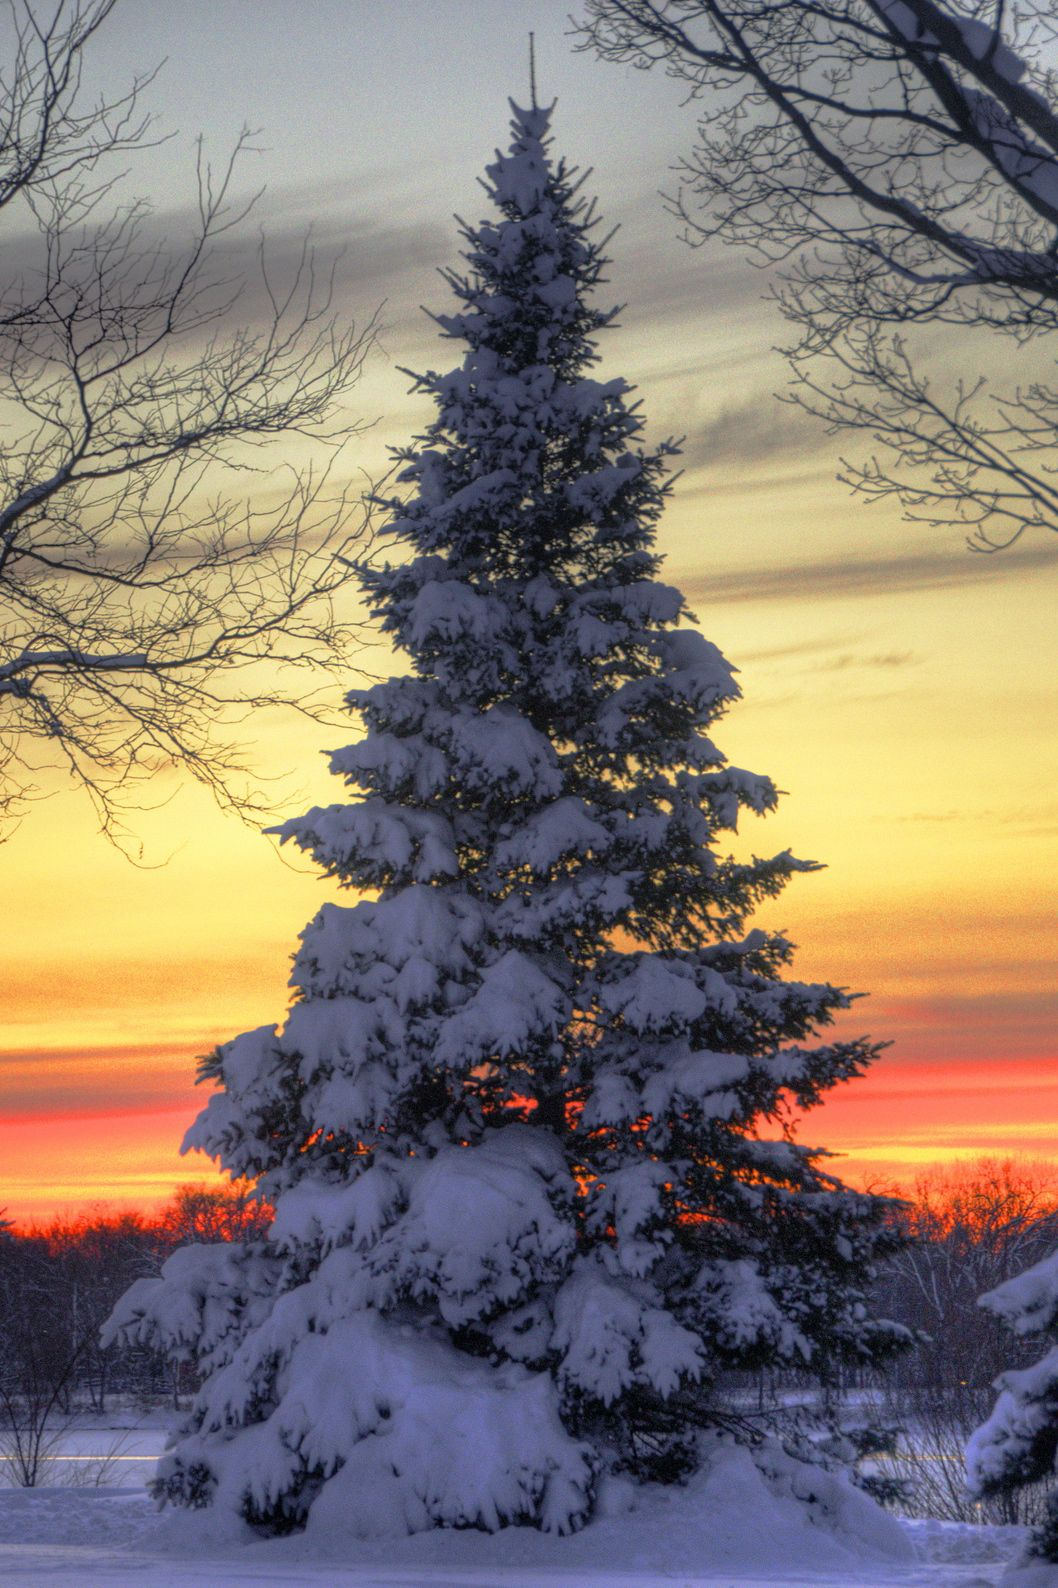 nature has no need for artificial decorations | Winter sunset, Winter scenery, Snow